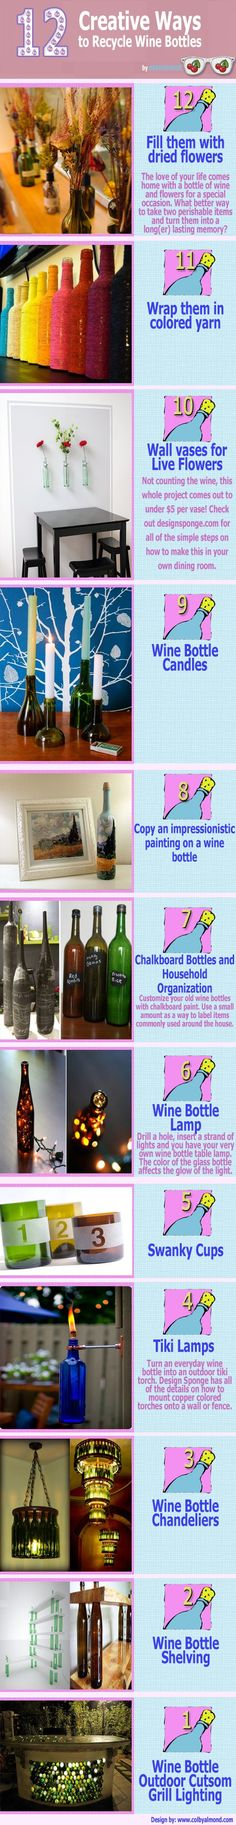 creative ideas to recycle wine bottles